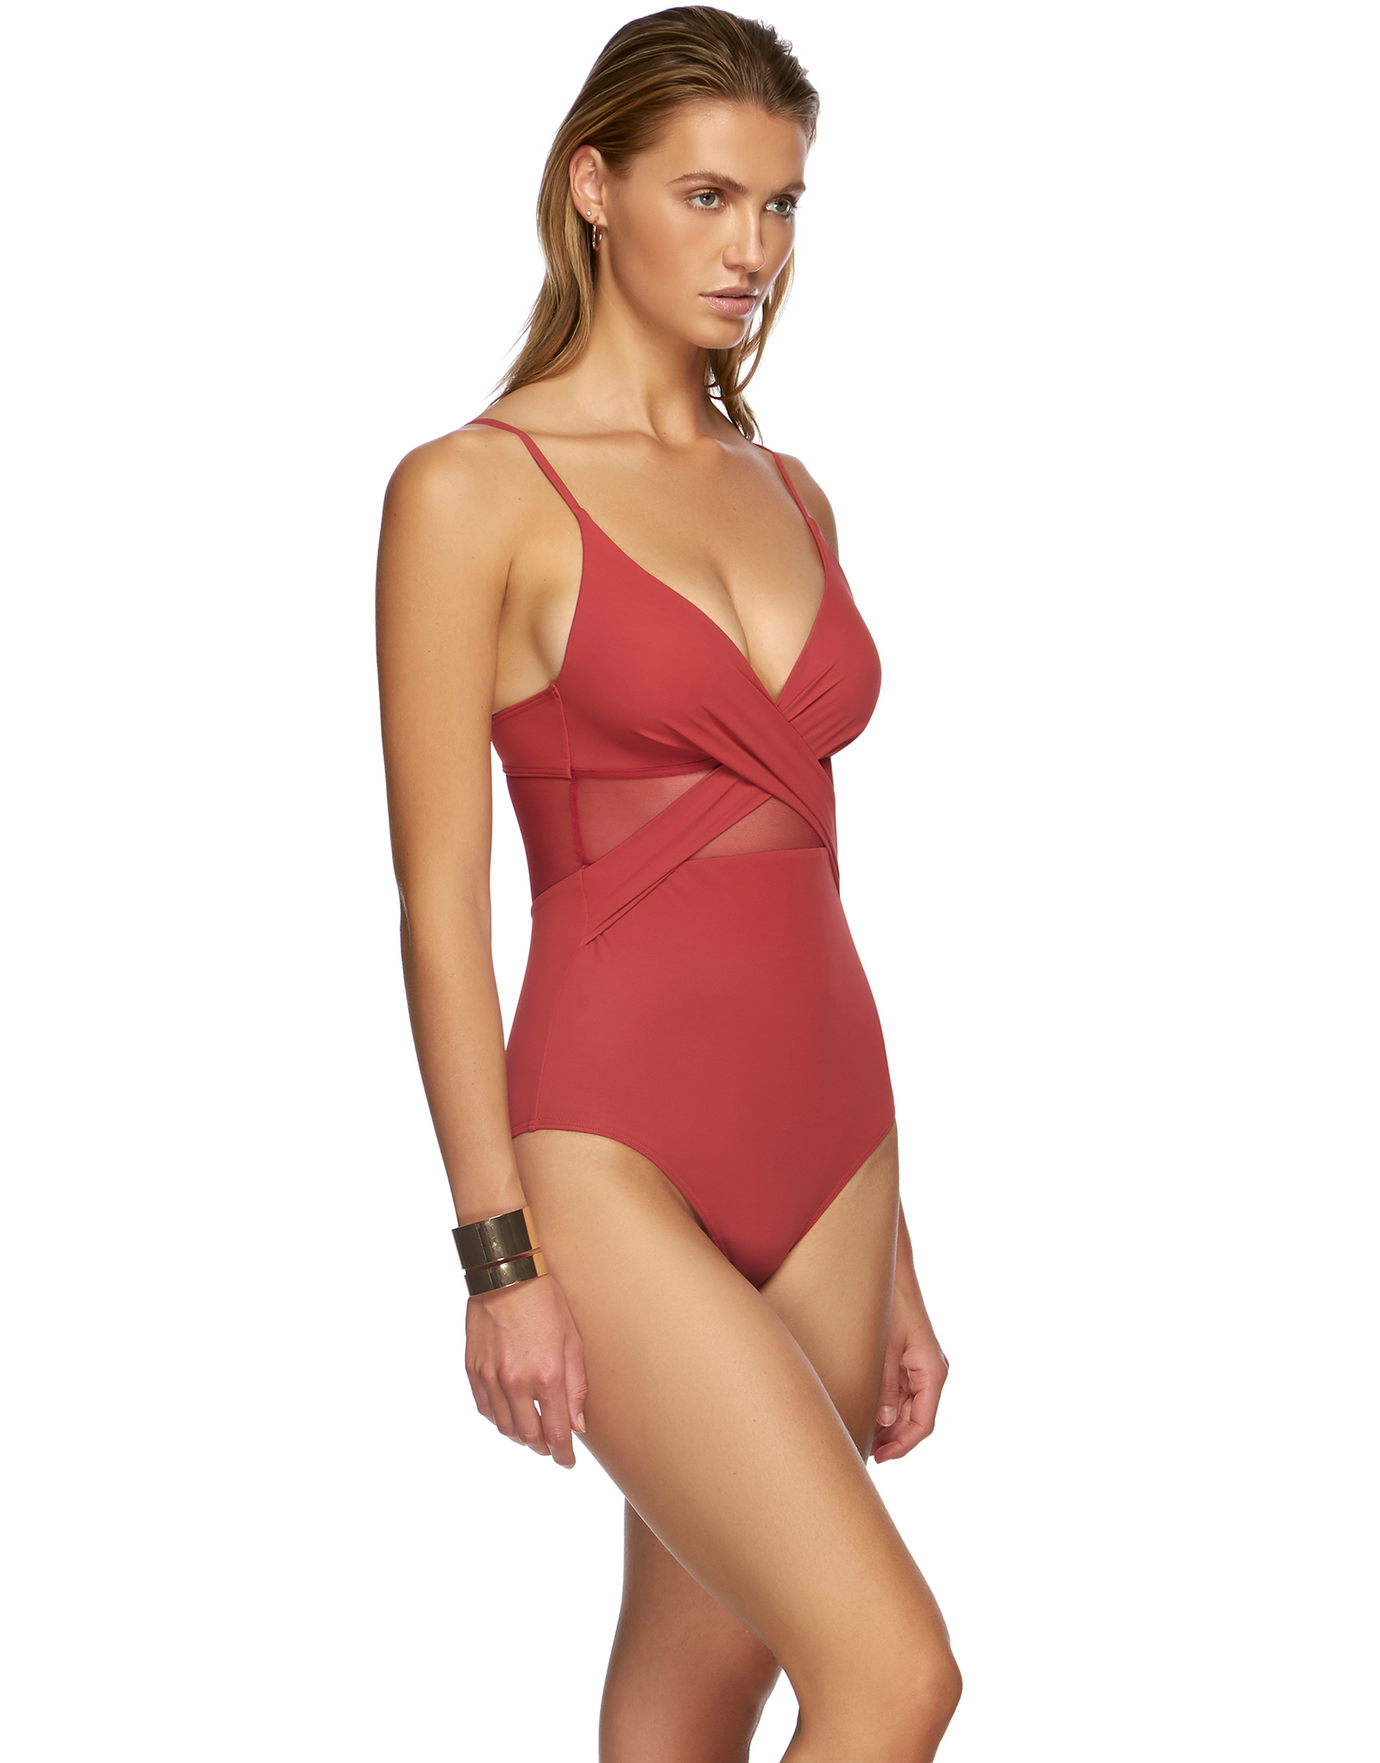 Jets Contour Cross Over Swimsuit - Red